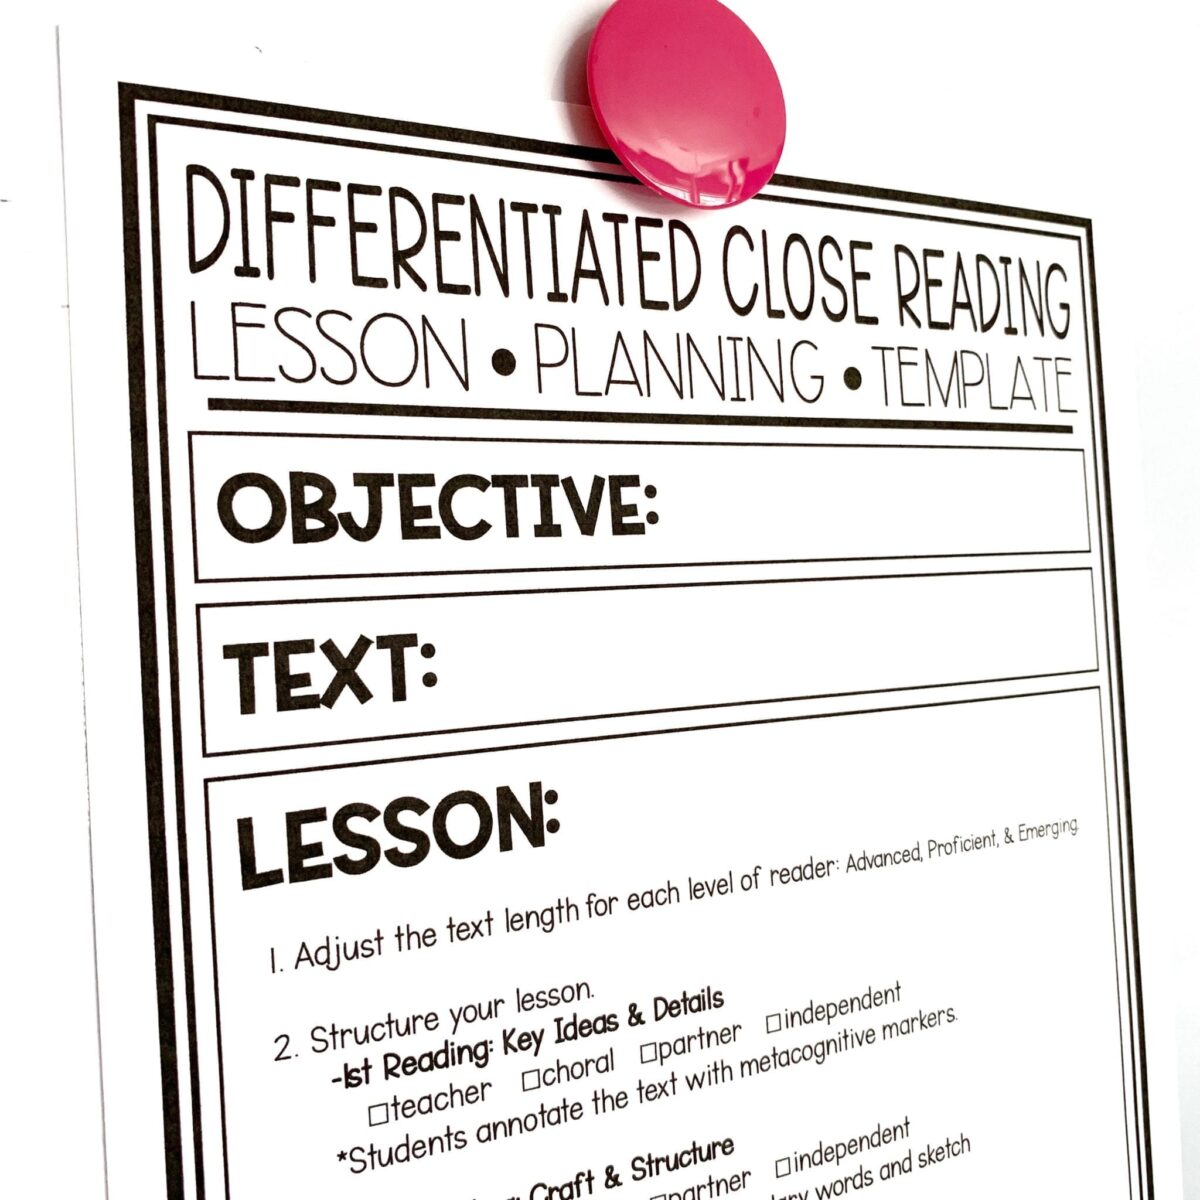 Differentiated Close Reading